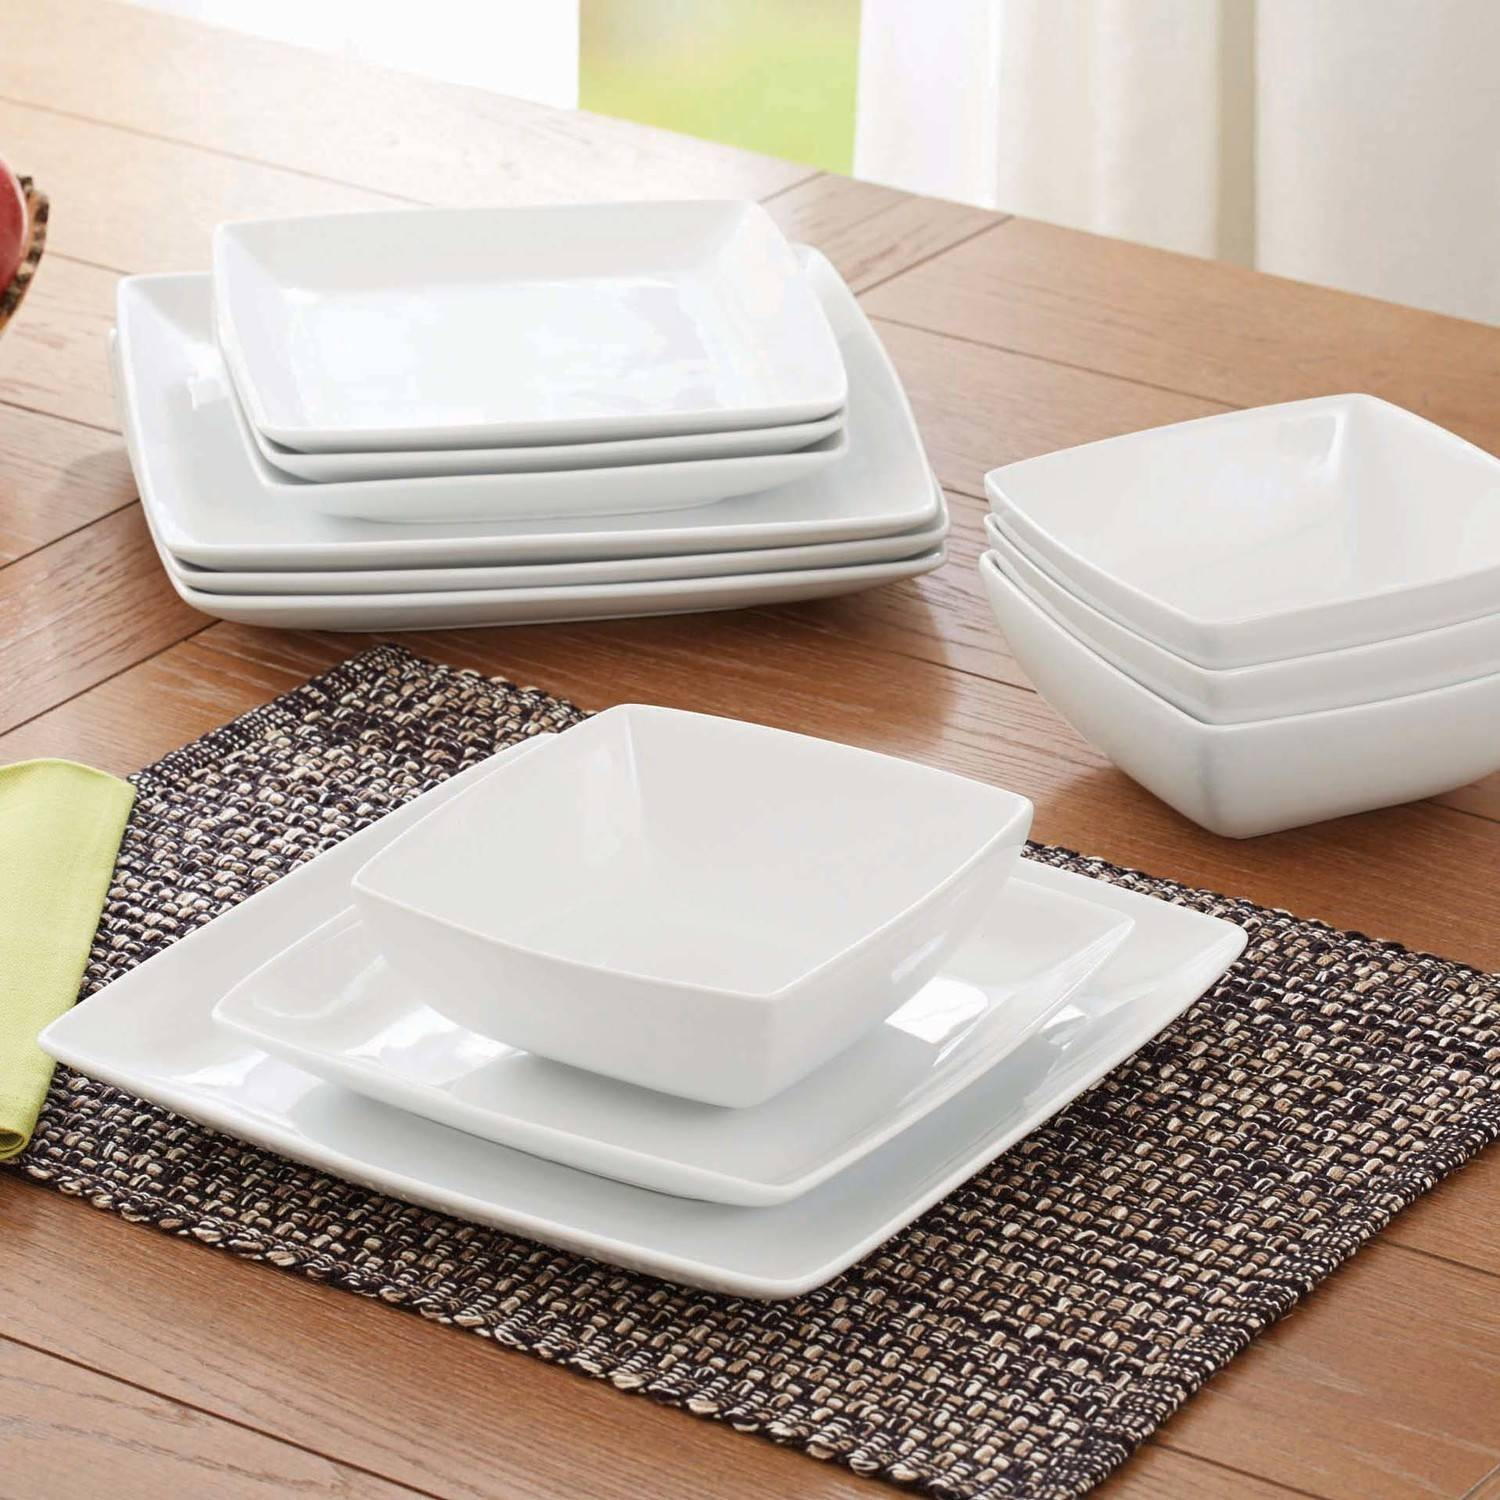 Better Homes and Gardens Coupe Square 12-Piece Dinnerware Set White & Better Homes and Gardens Coupe Square 12-Piece Dinnerware Set White ...